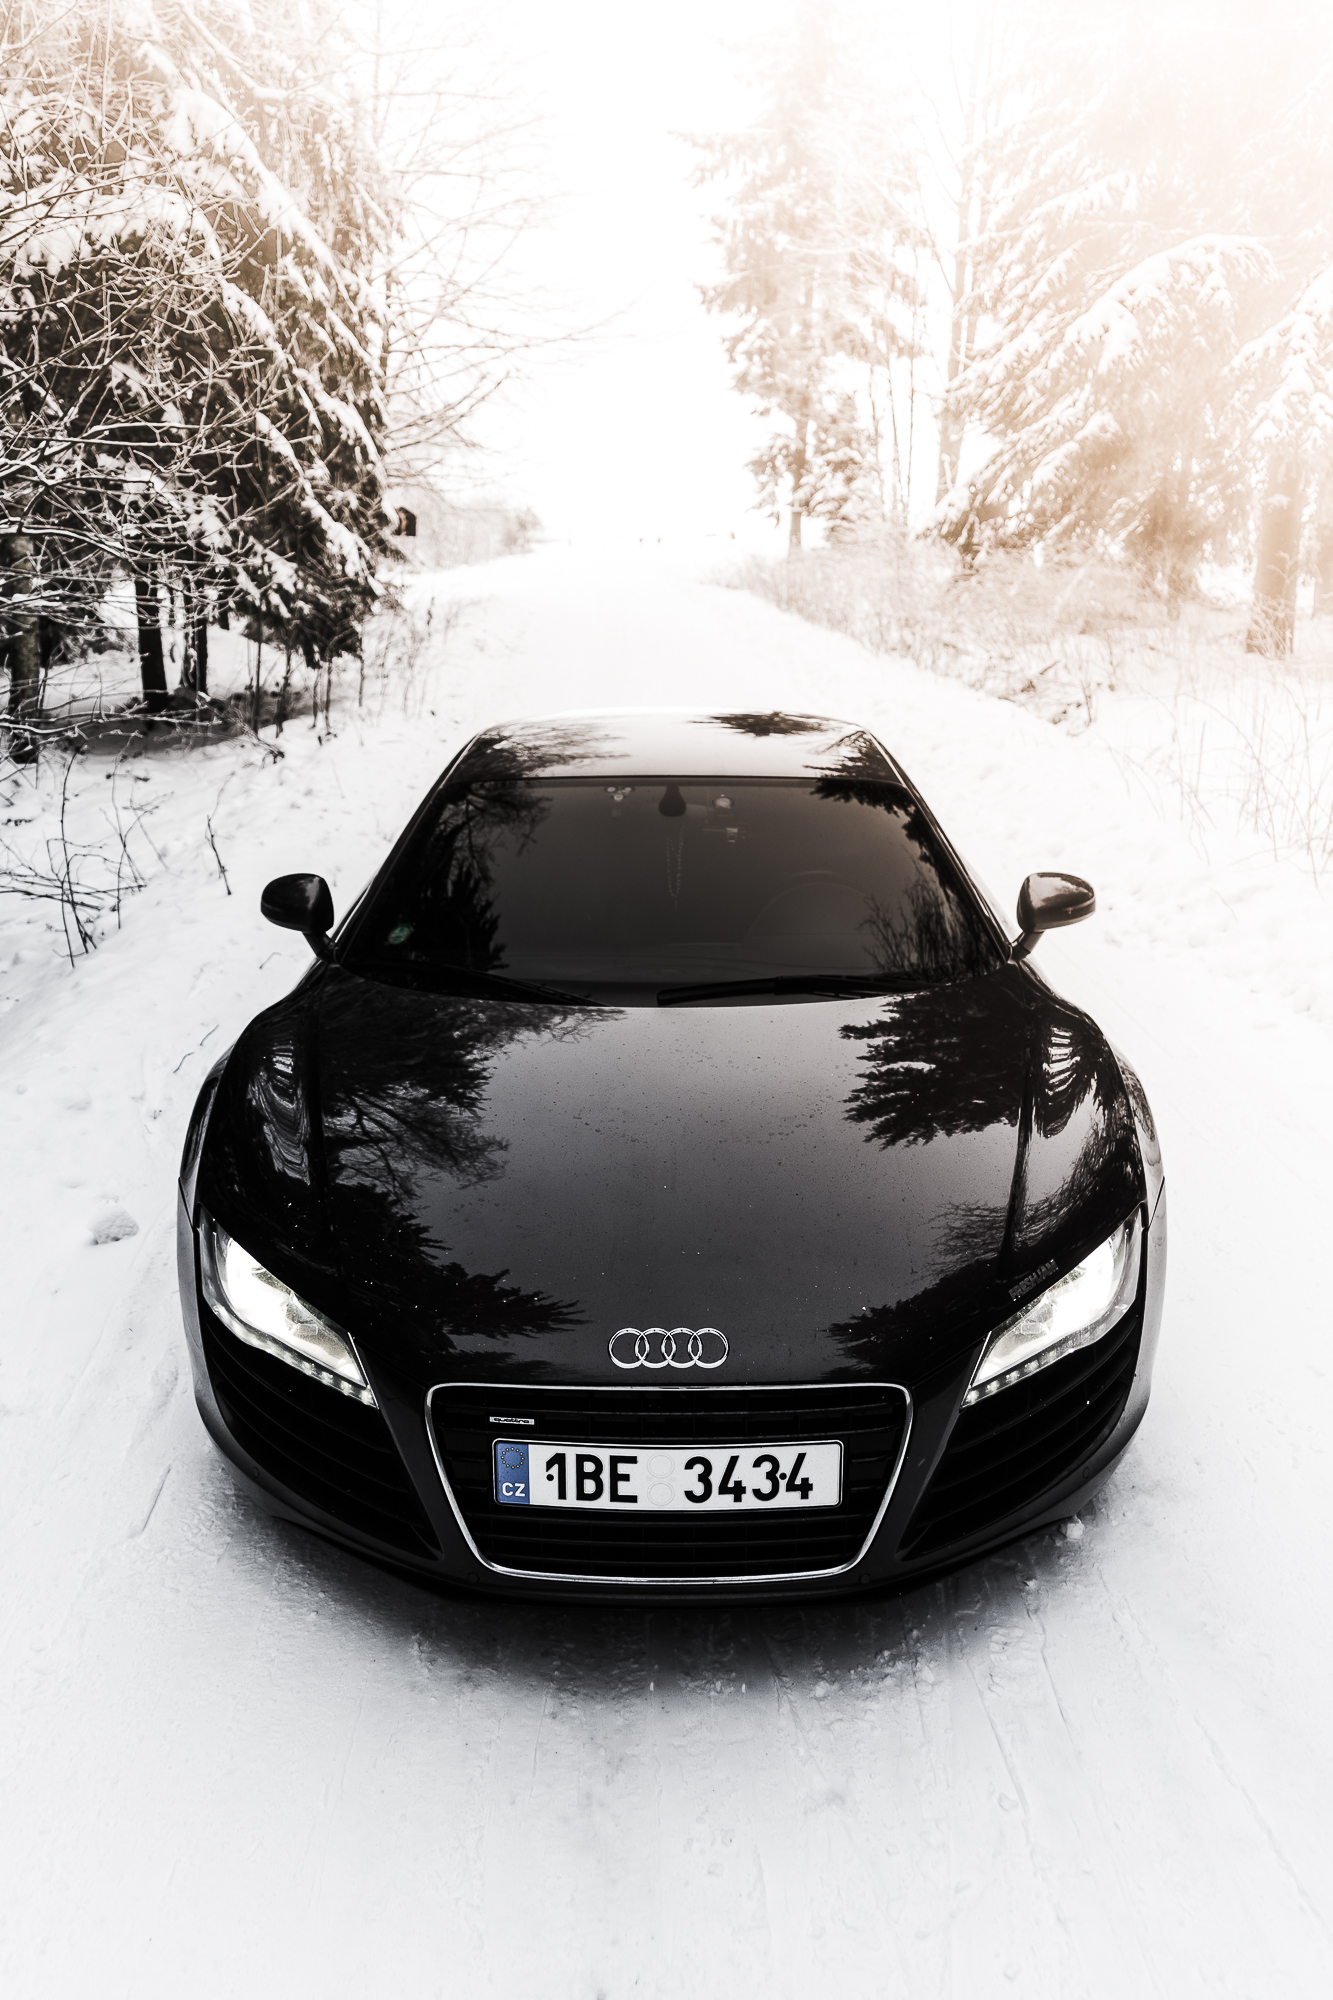 R8 Angry Look Winter Forest